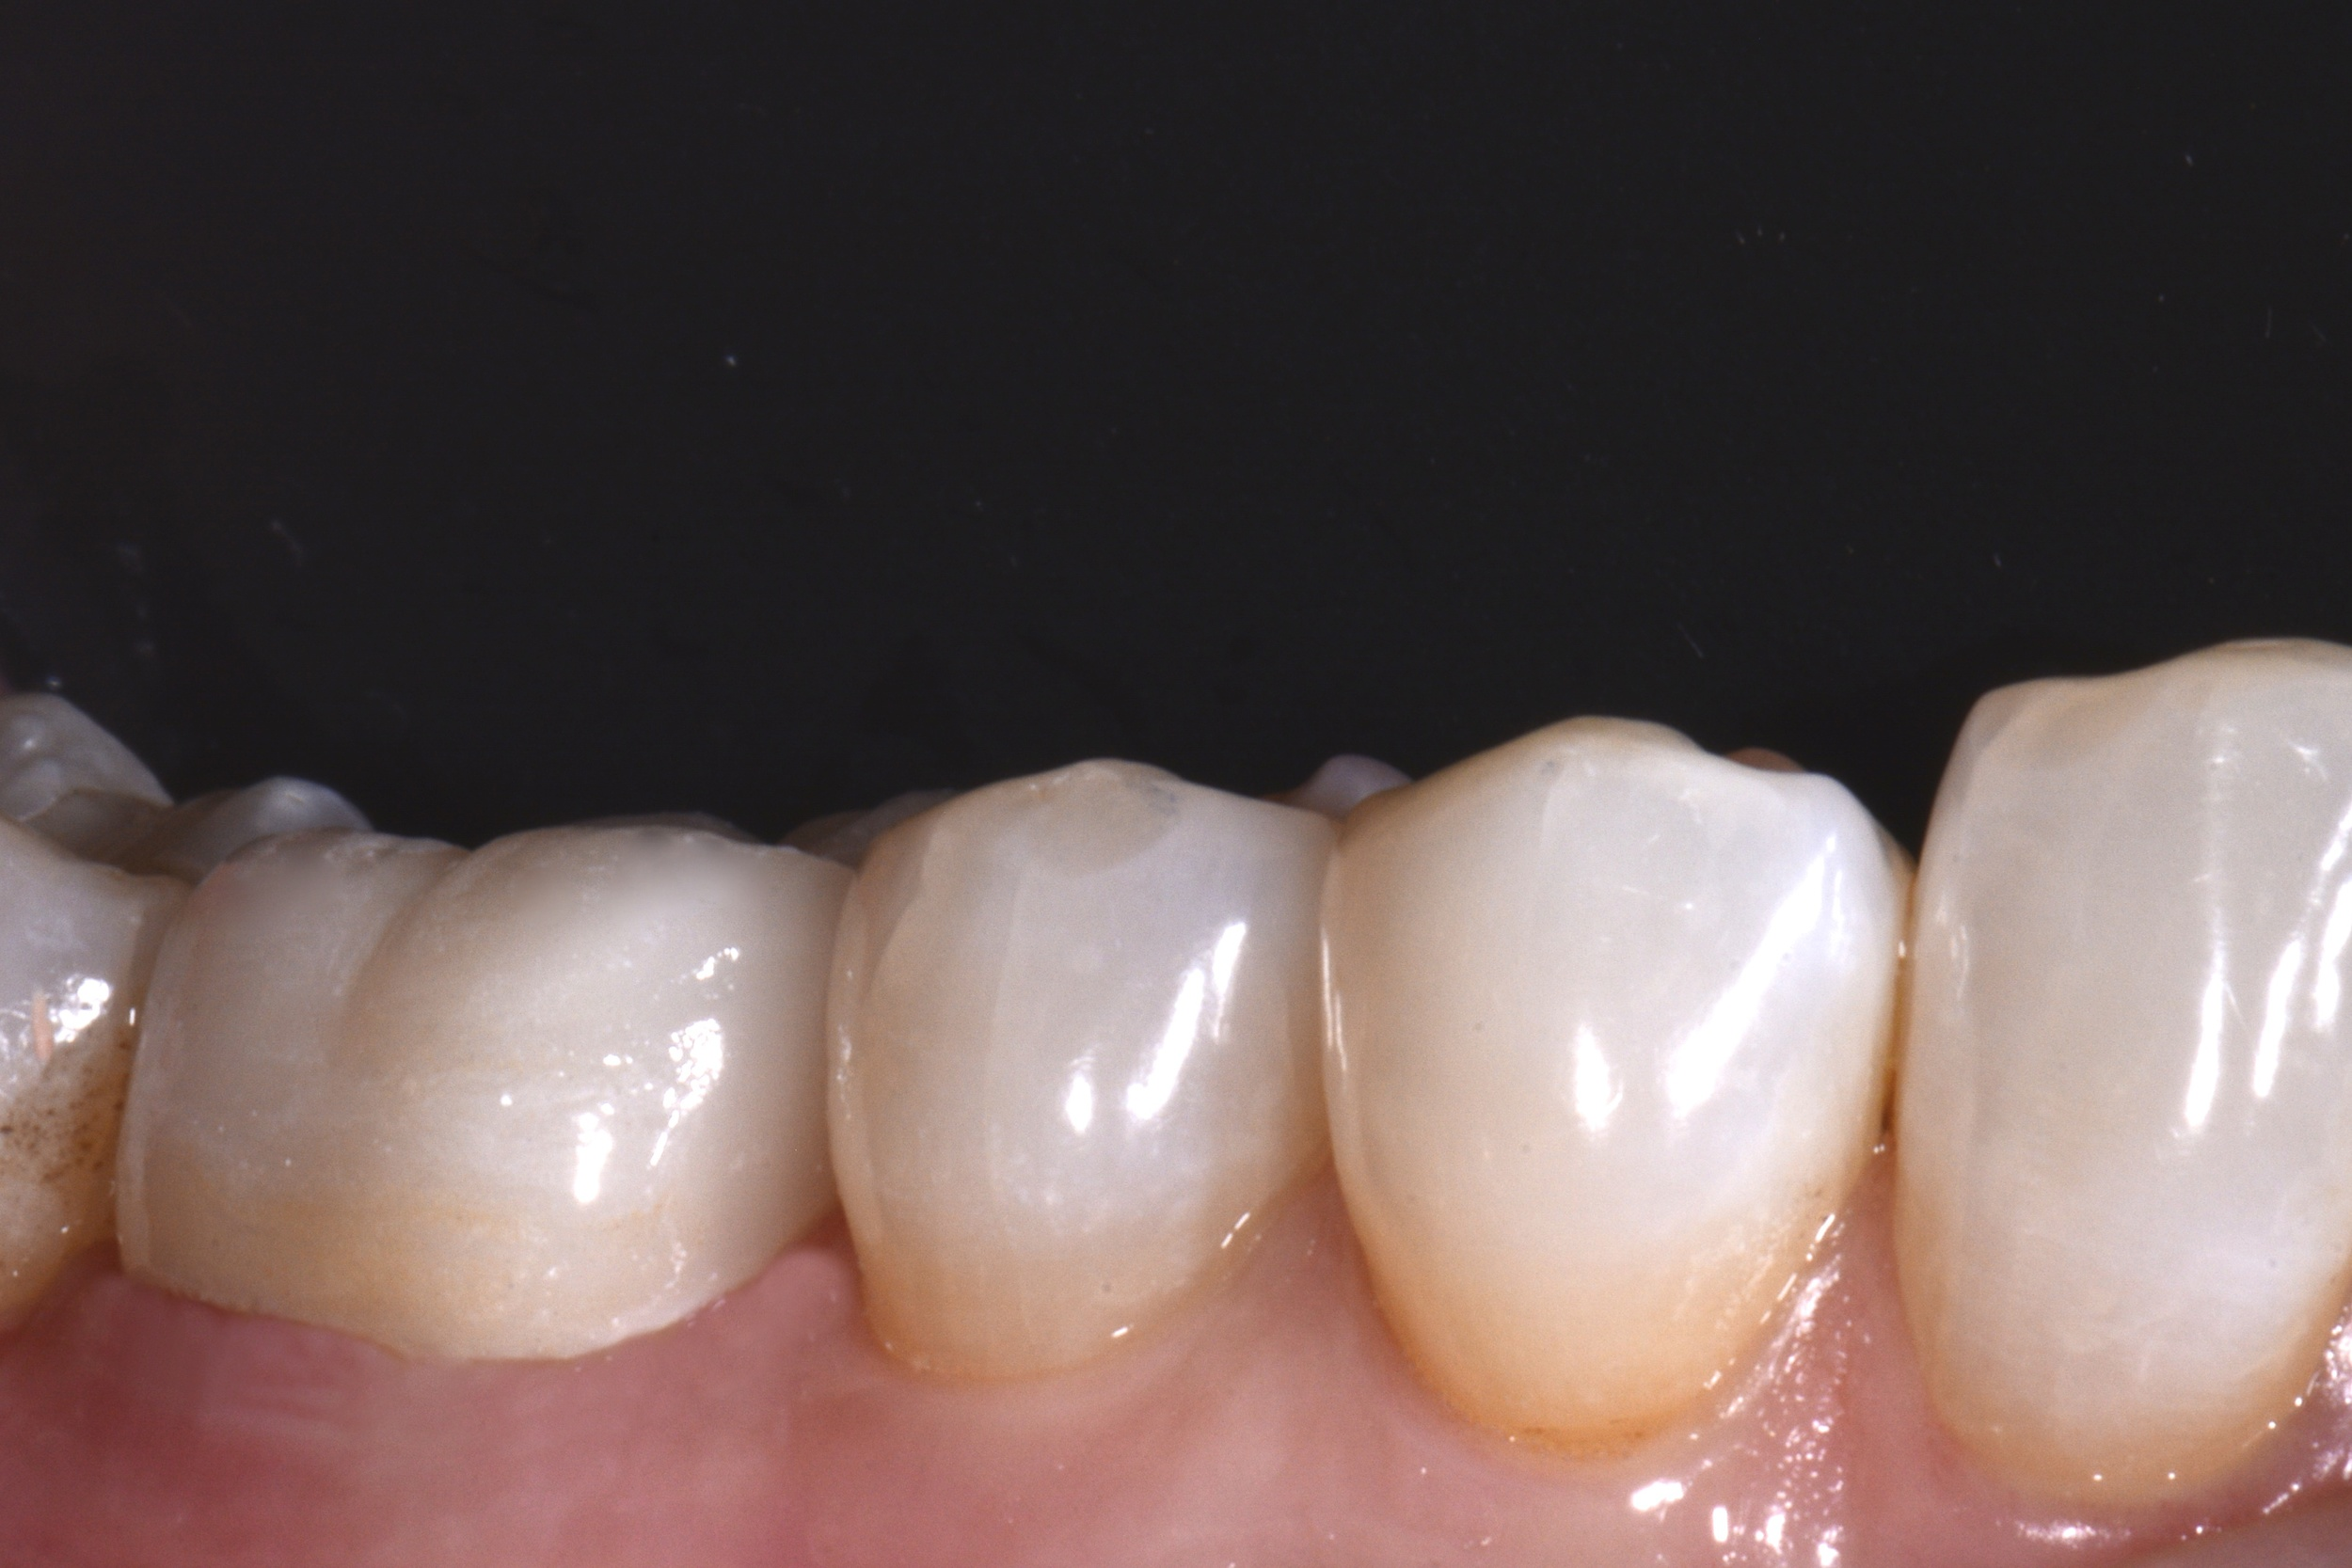 All restorative dentistry + digital dental photography completed by Dr. Matthew Kogan